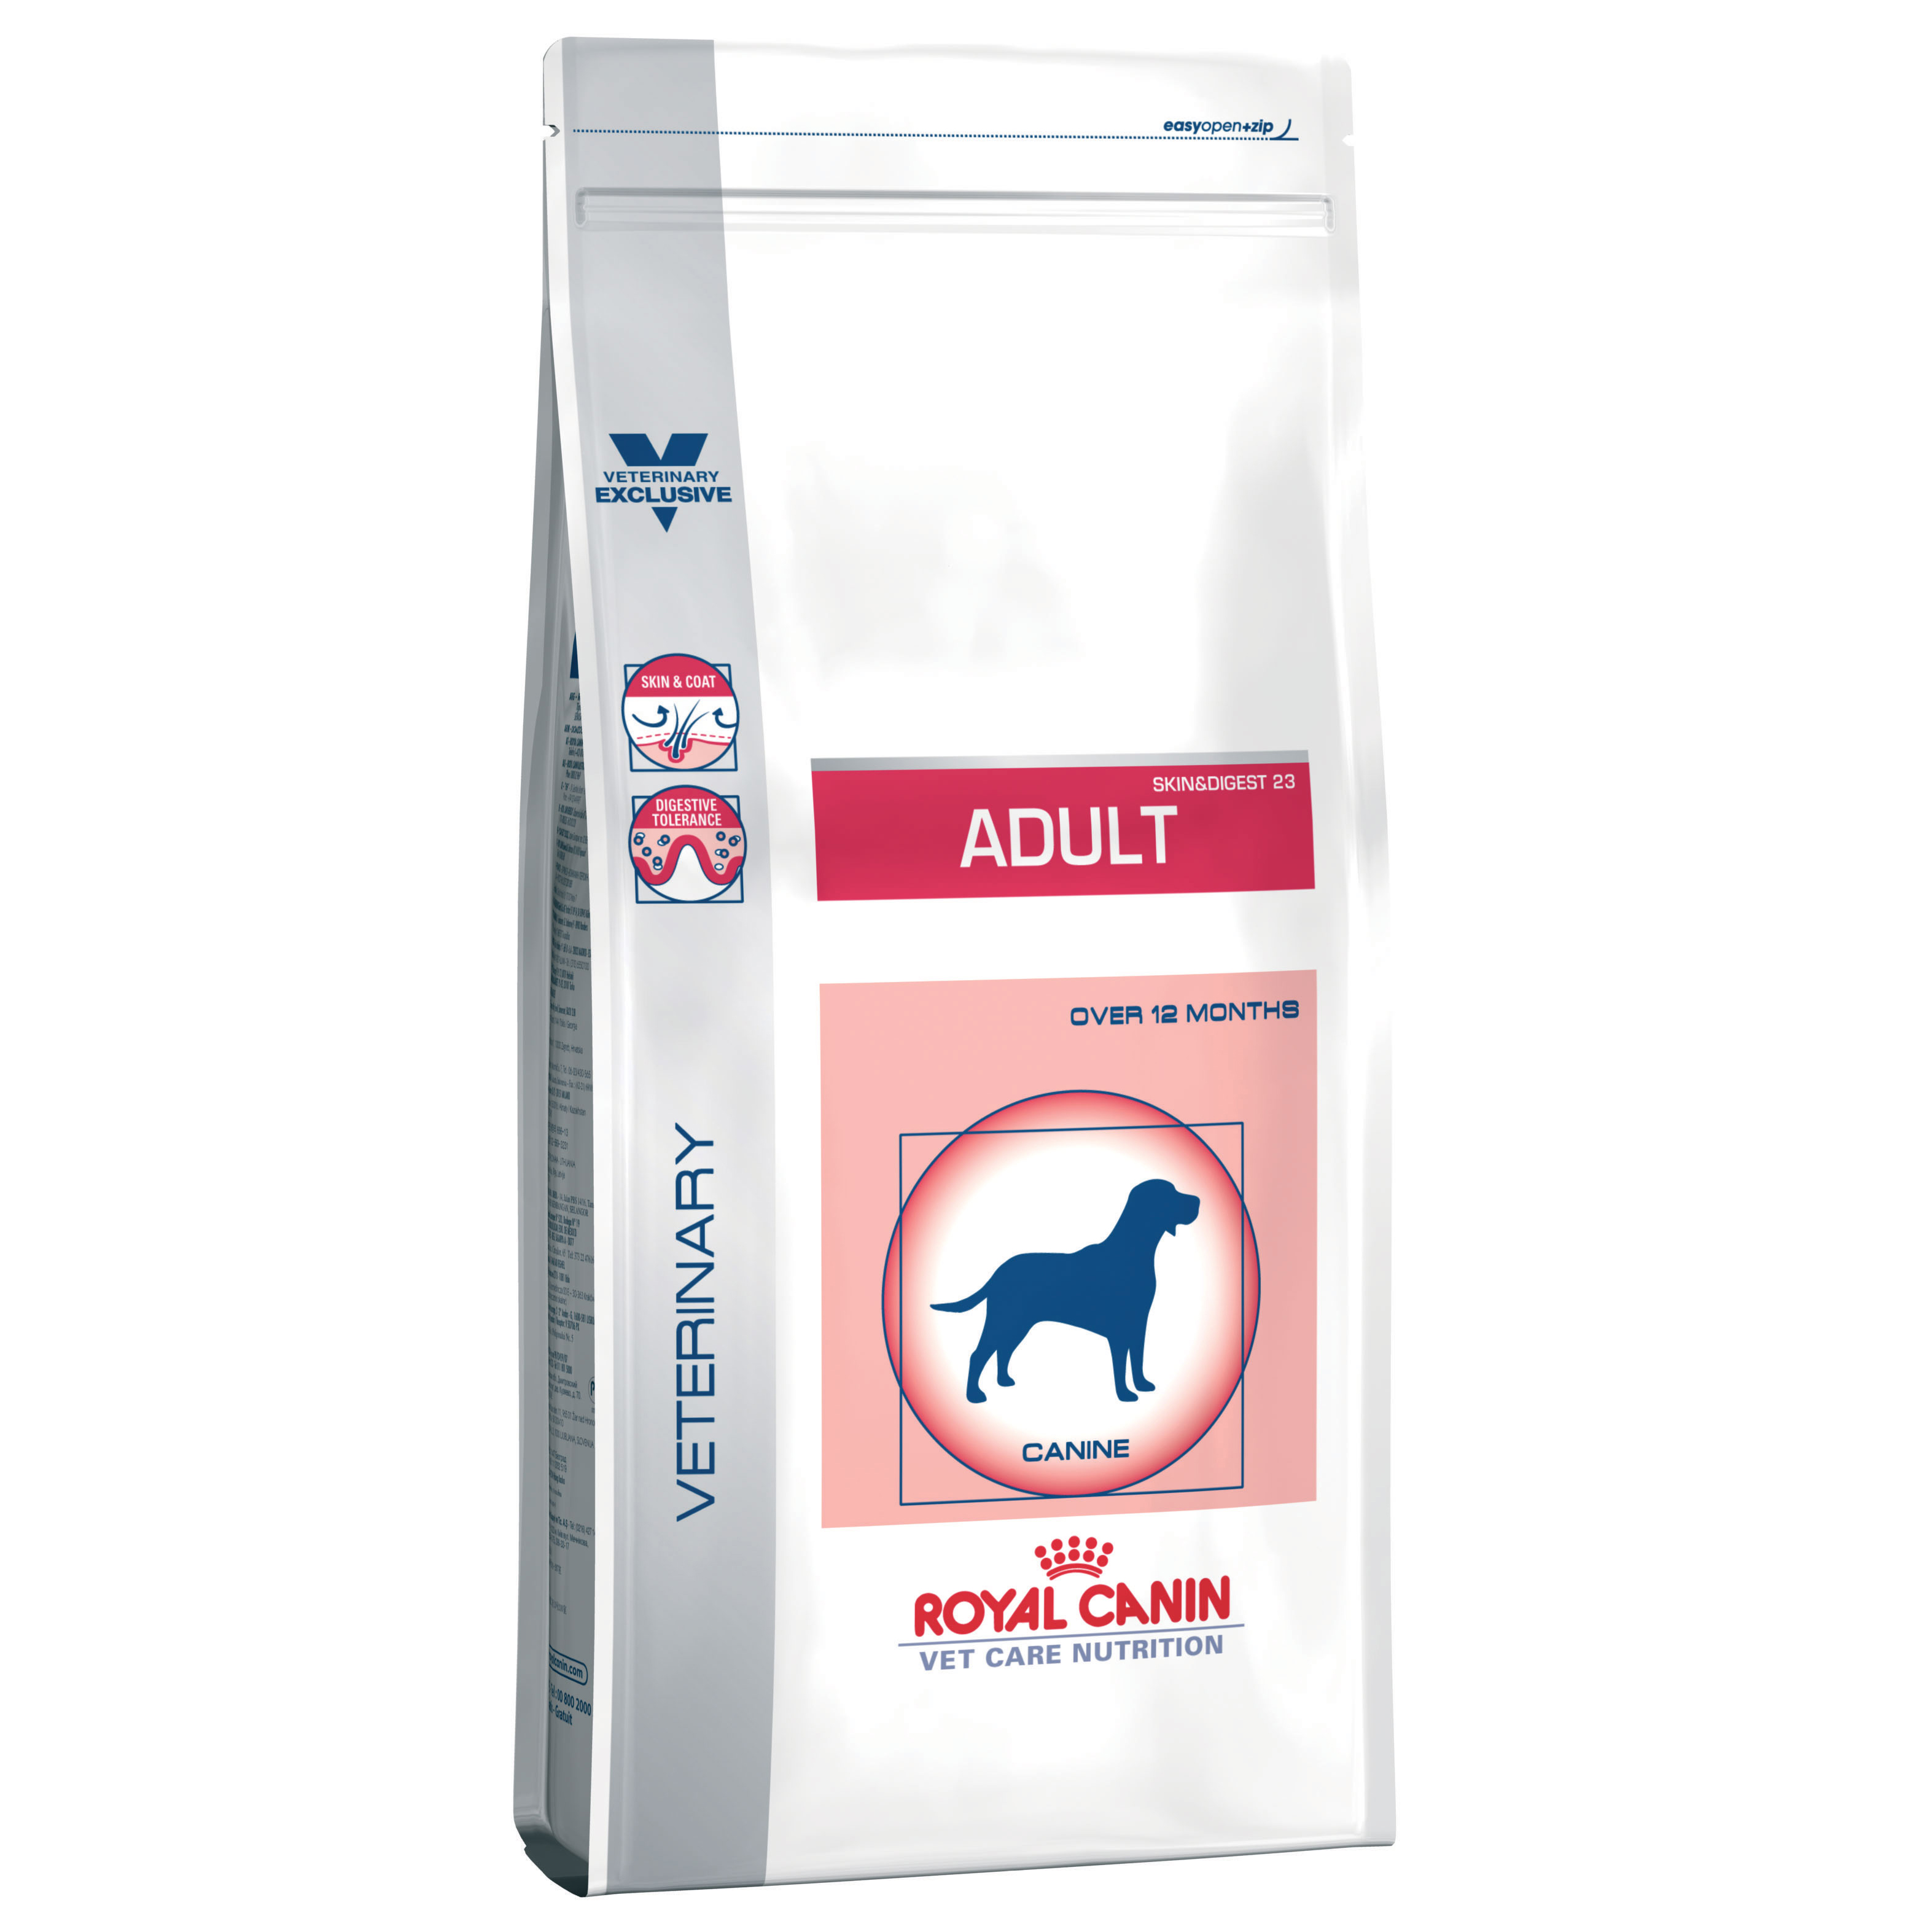 Royal Canin Vet Care Nutrition Adult Medium Dog (Skin & Digest 23) Dry on Animed Direct